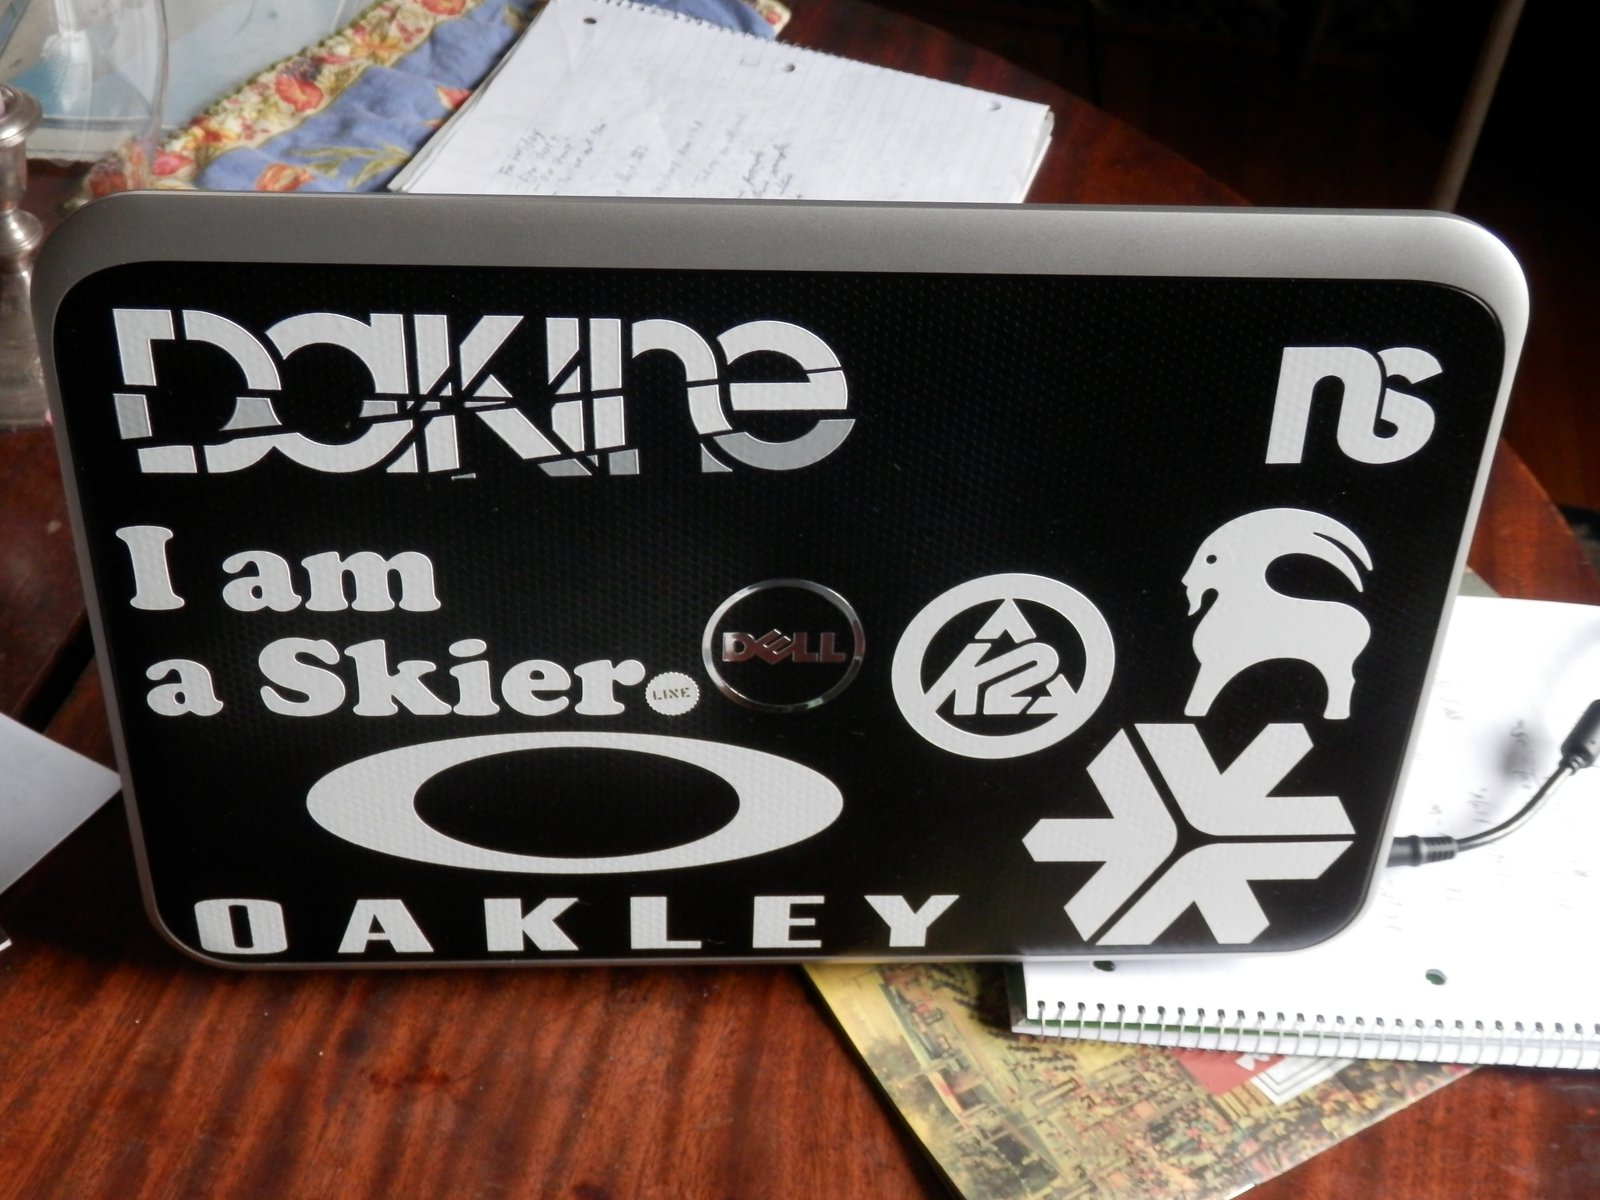 laptop sticker job